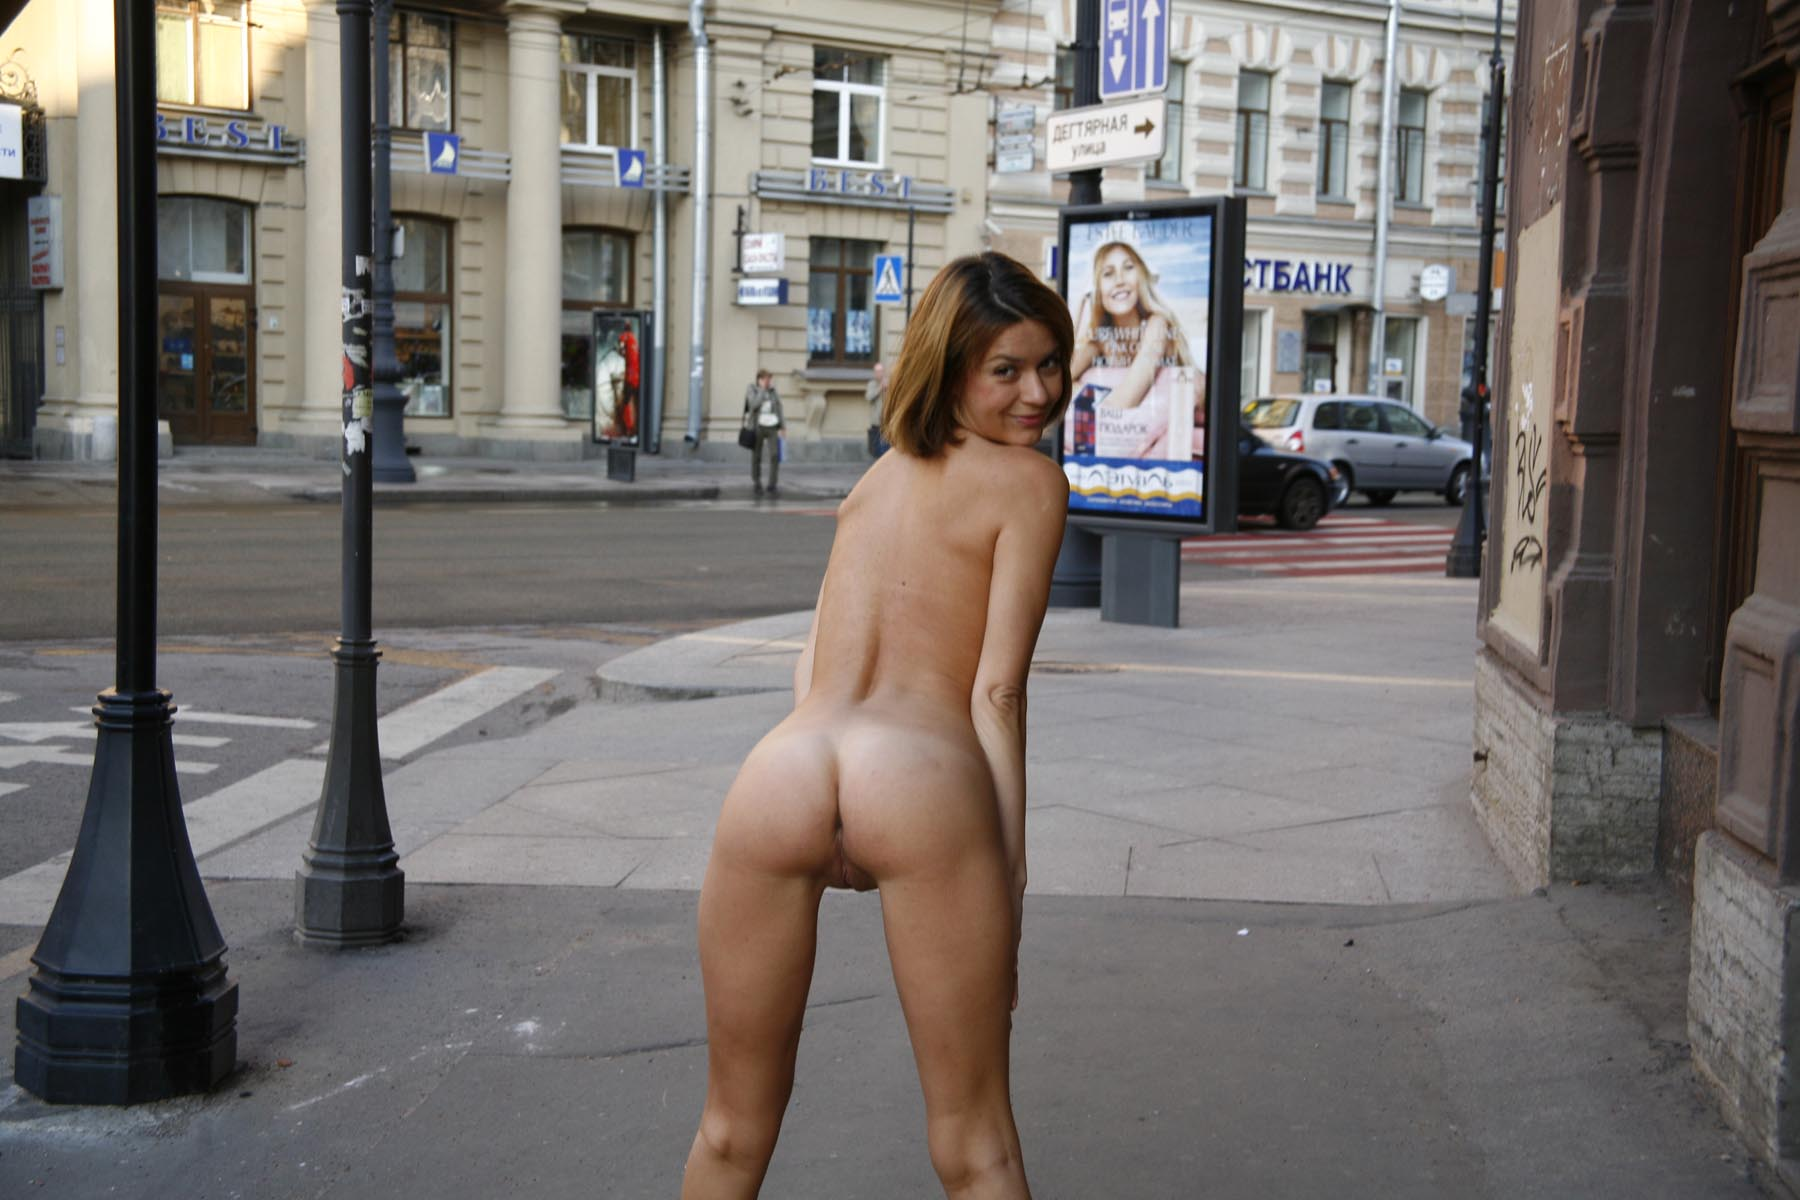 Sporty Short-Haired Blonde Posing Totally Naked At City -3401